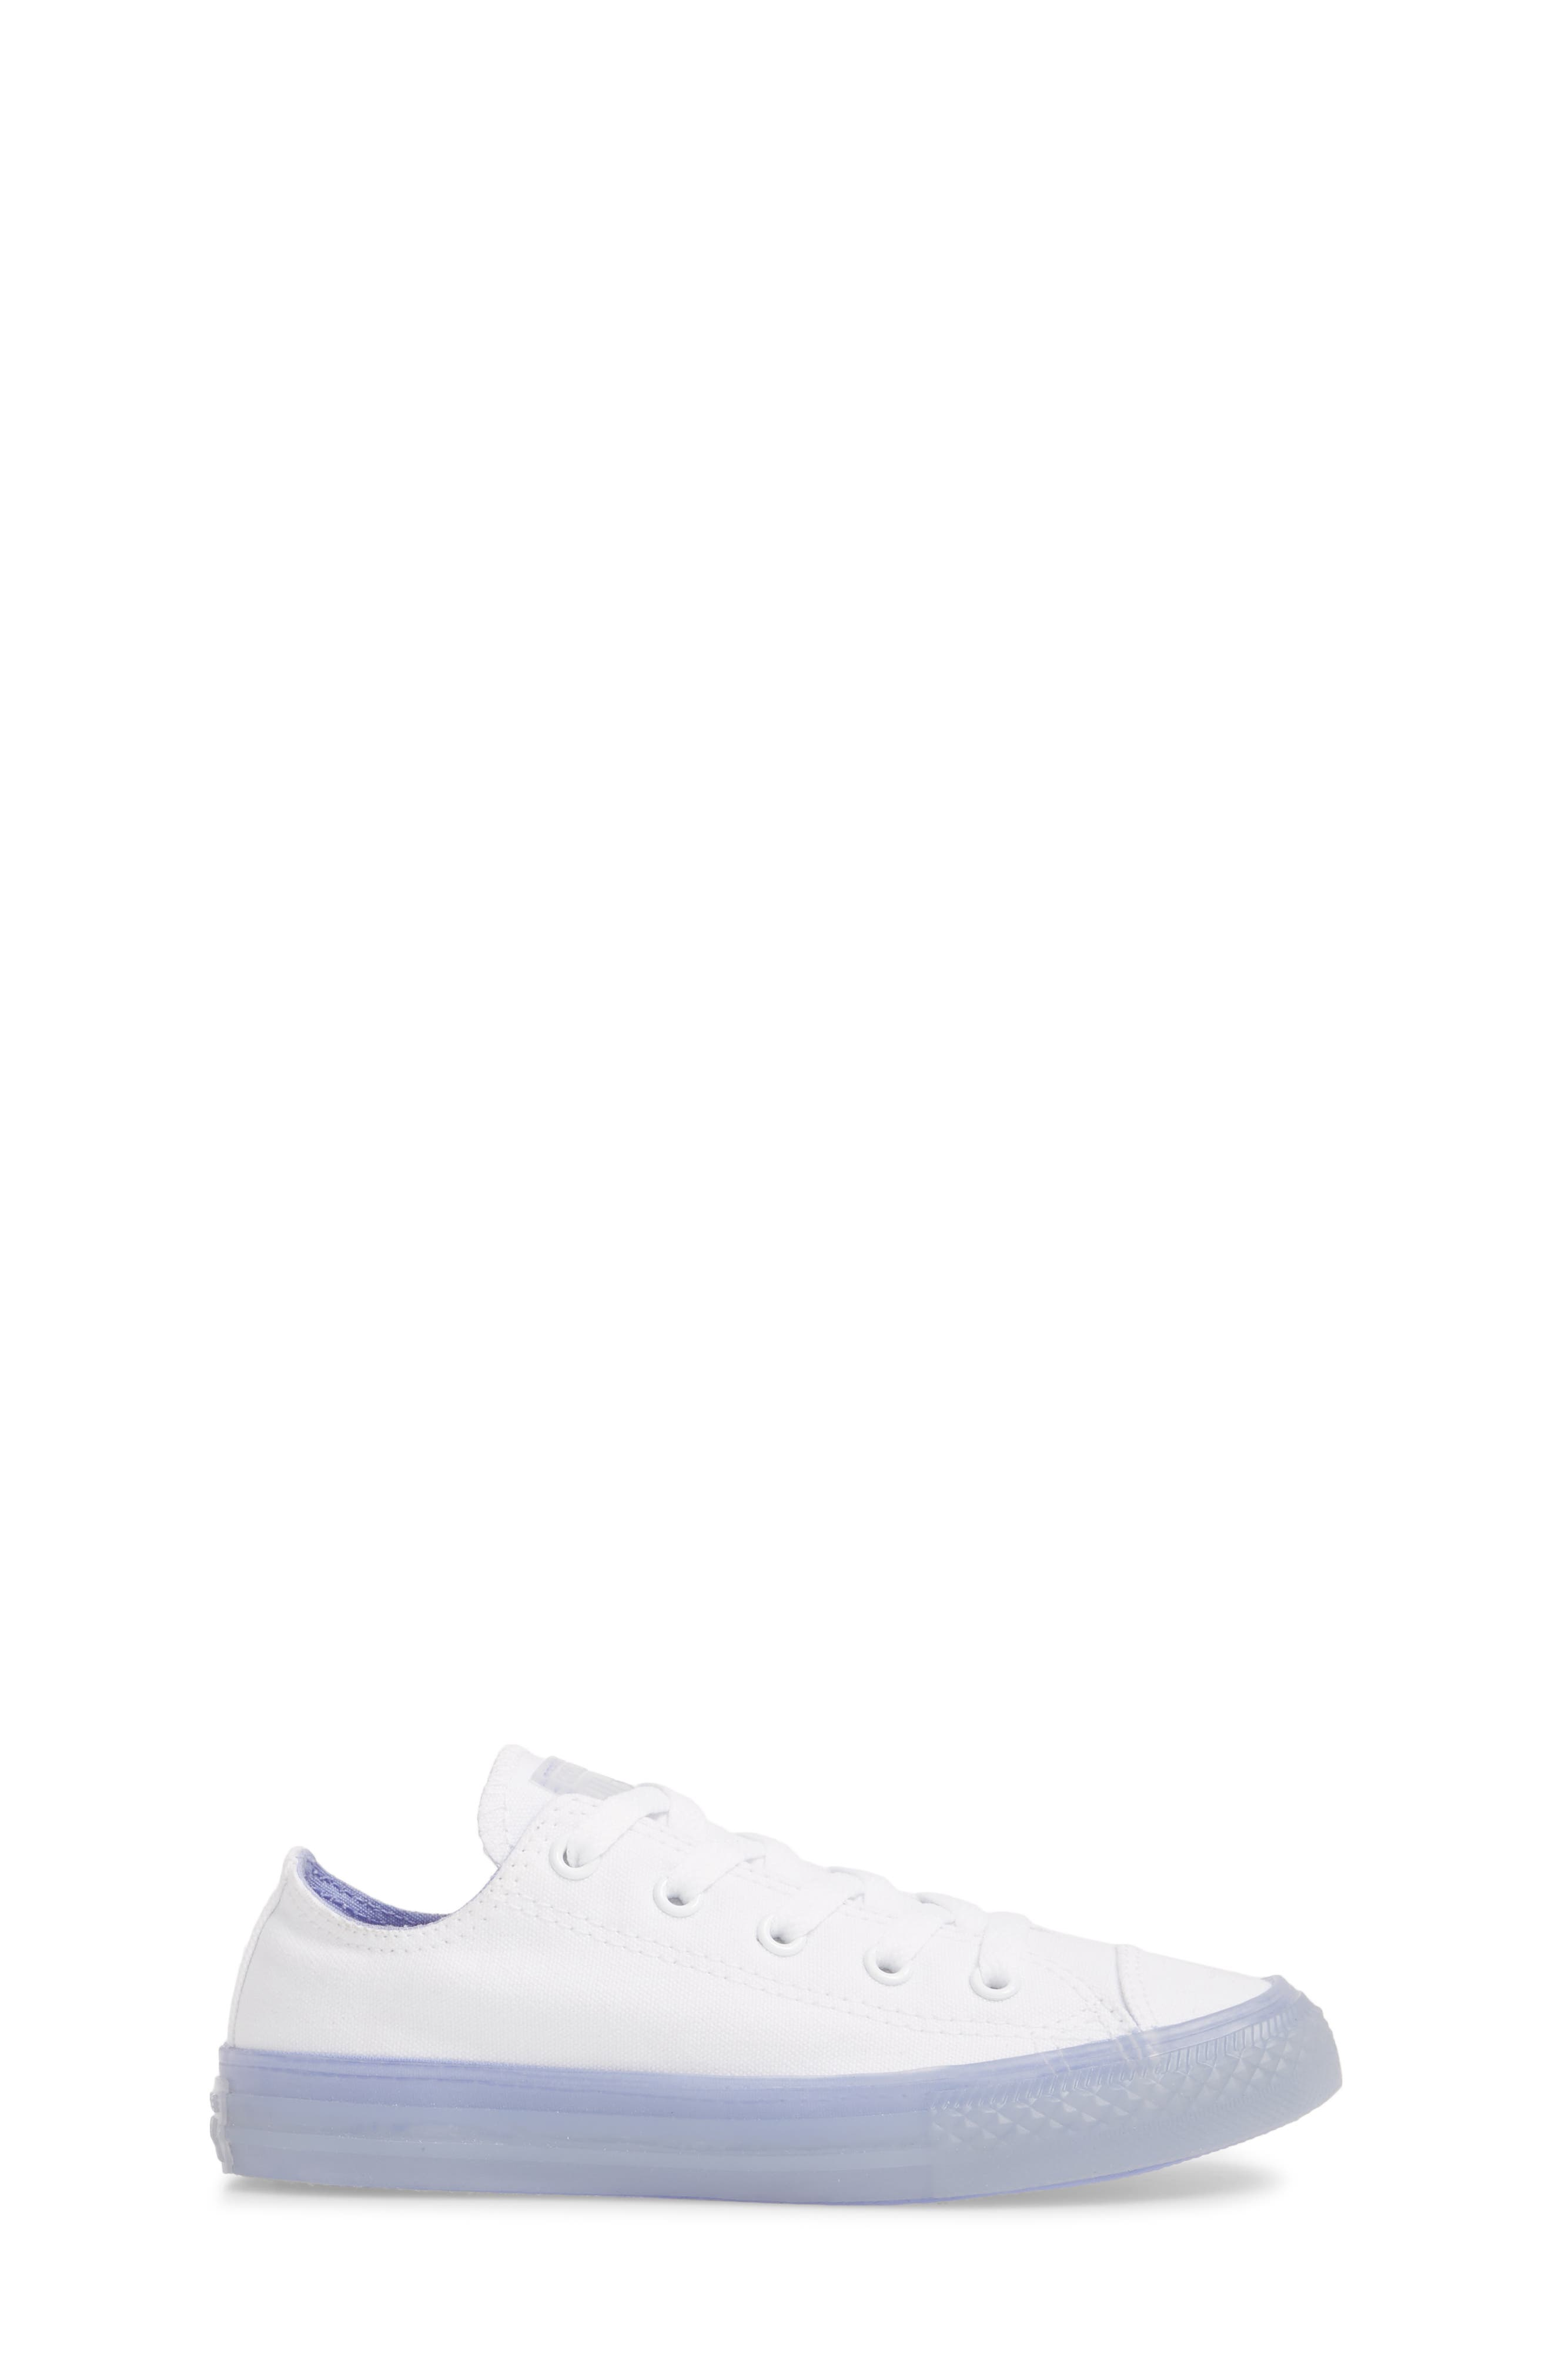 Chuck Taylor<sup>®</sup> All Star<sup>®</sup> Jelly Low Top Sneaker,                             Alternate thumbnail 3, color,                             Purple